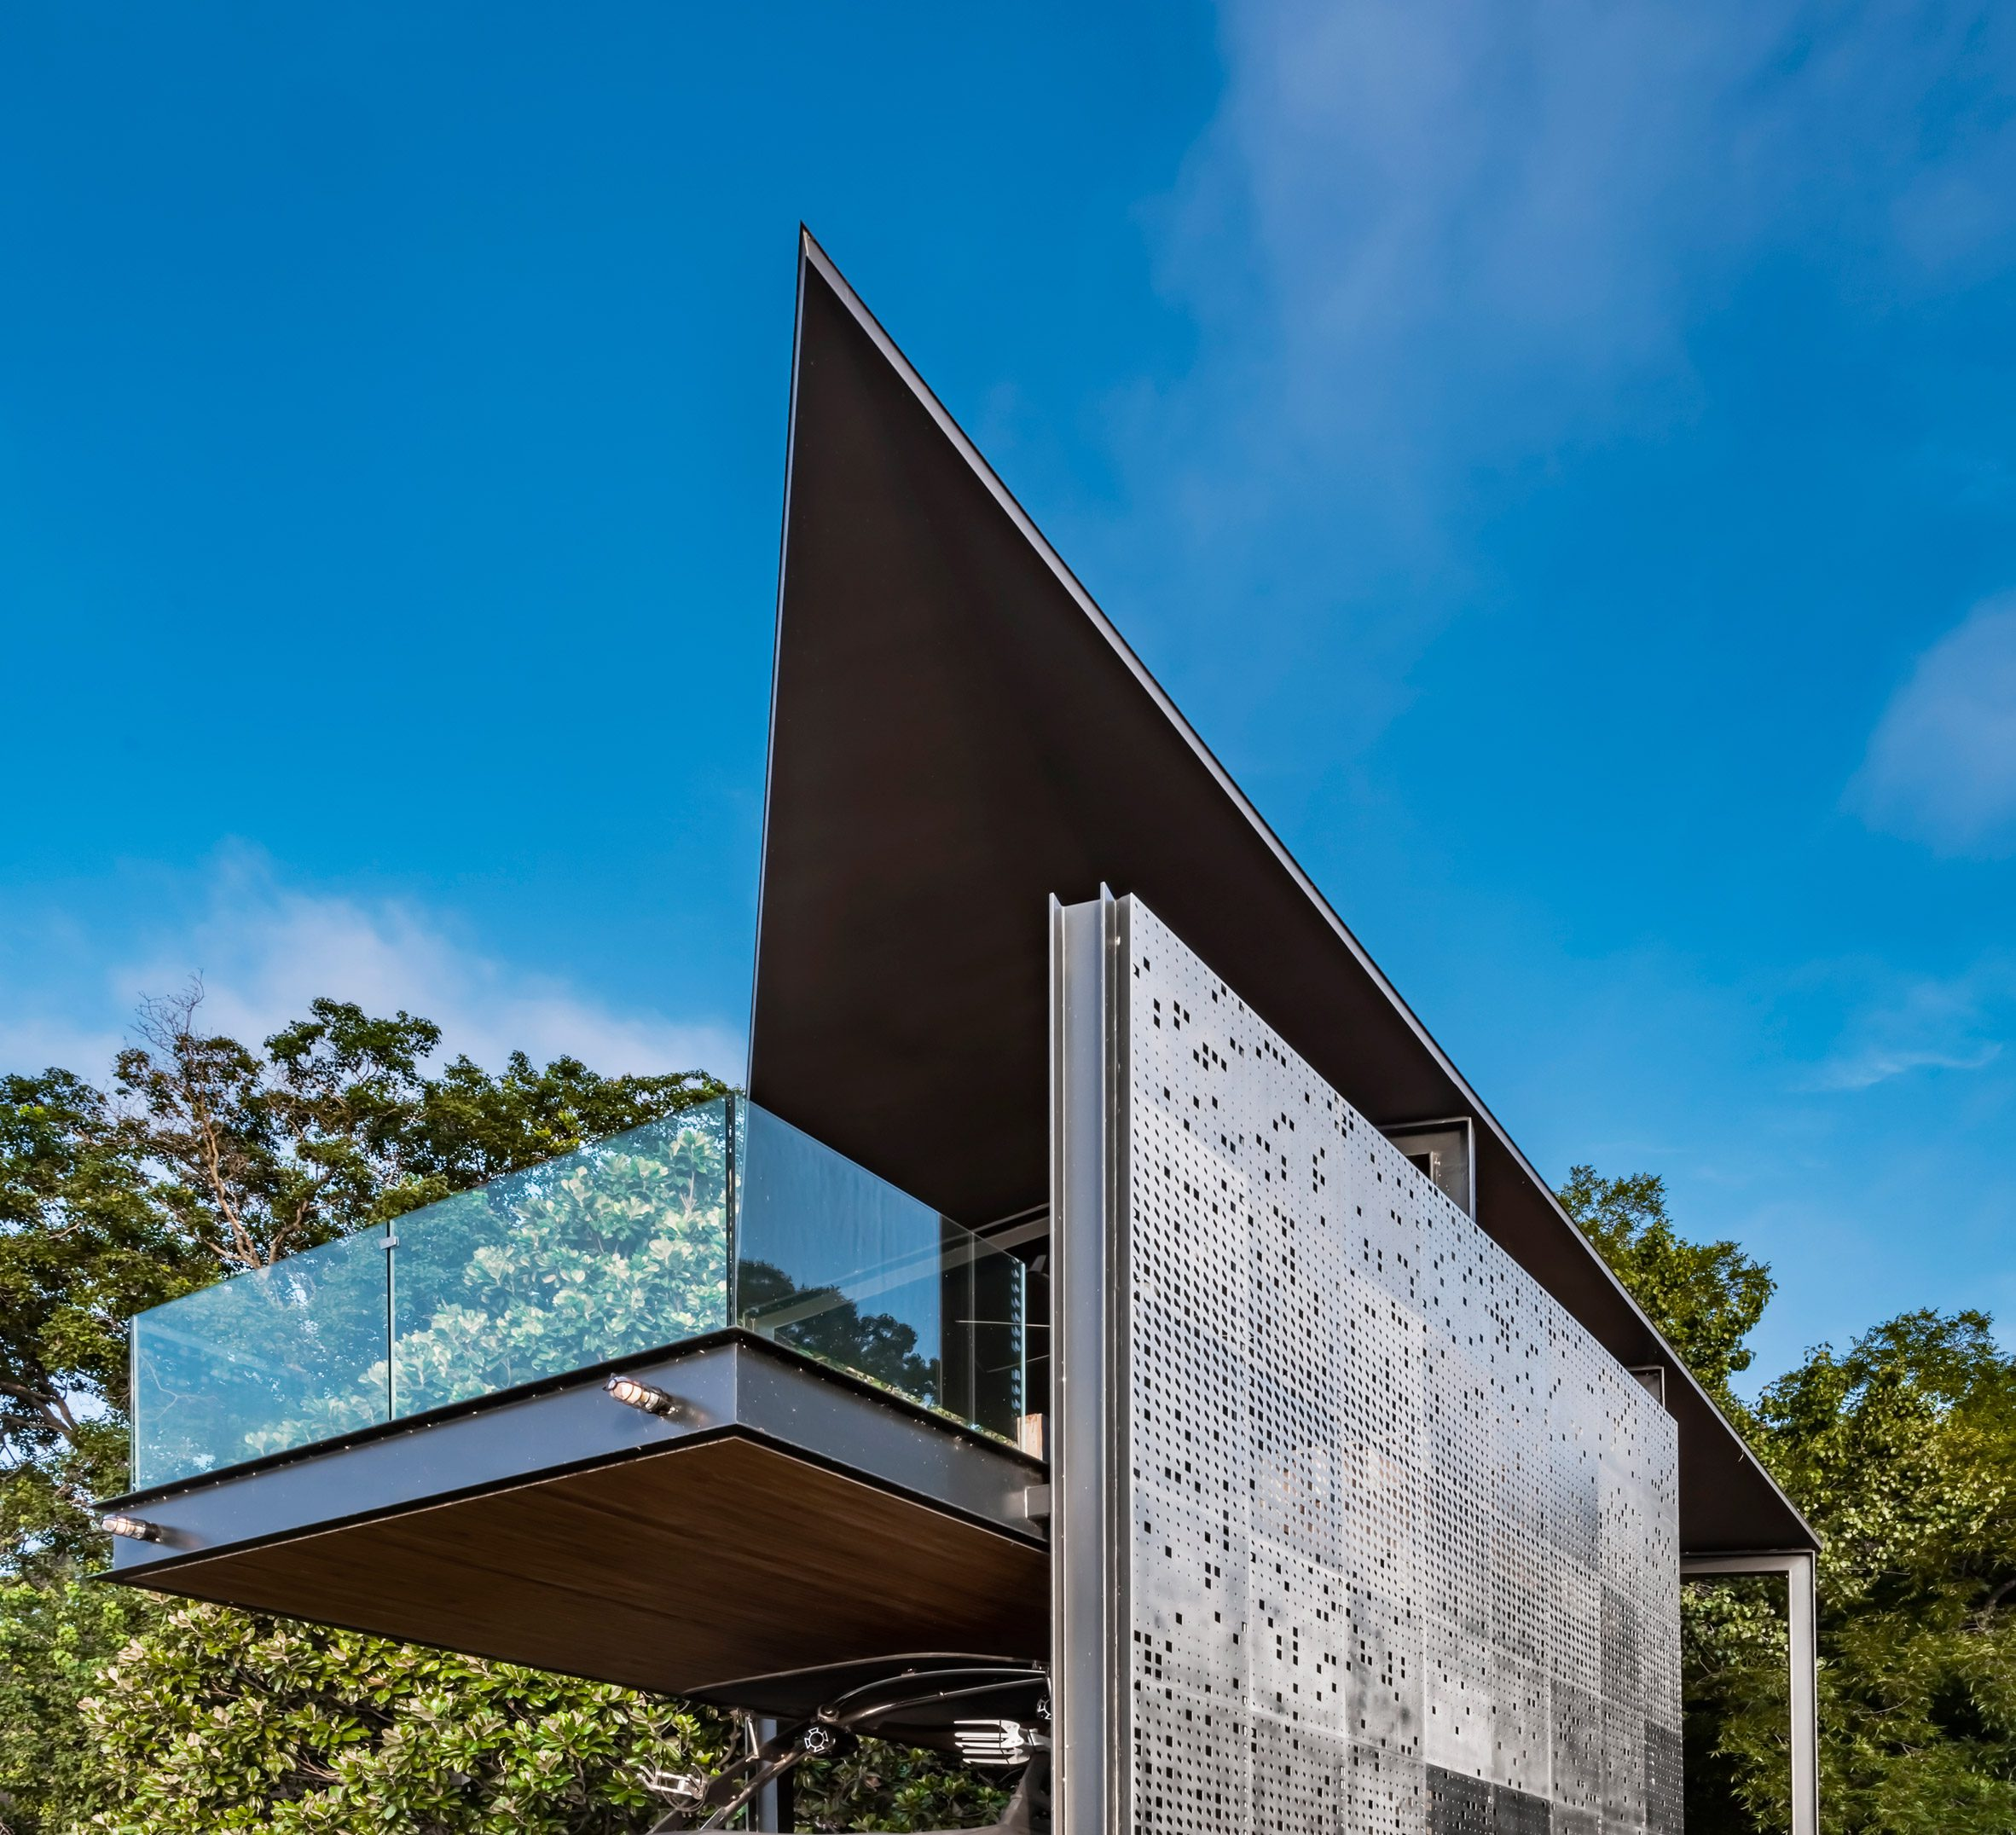 The project has perforated facades